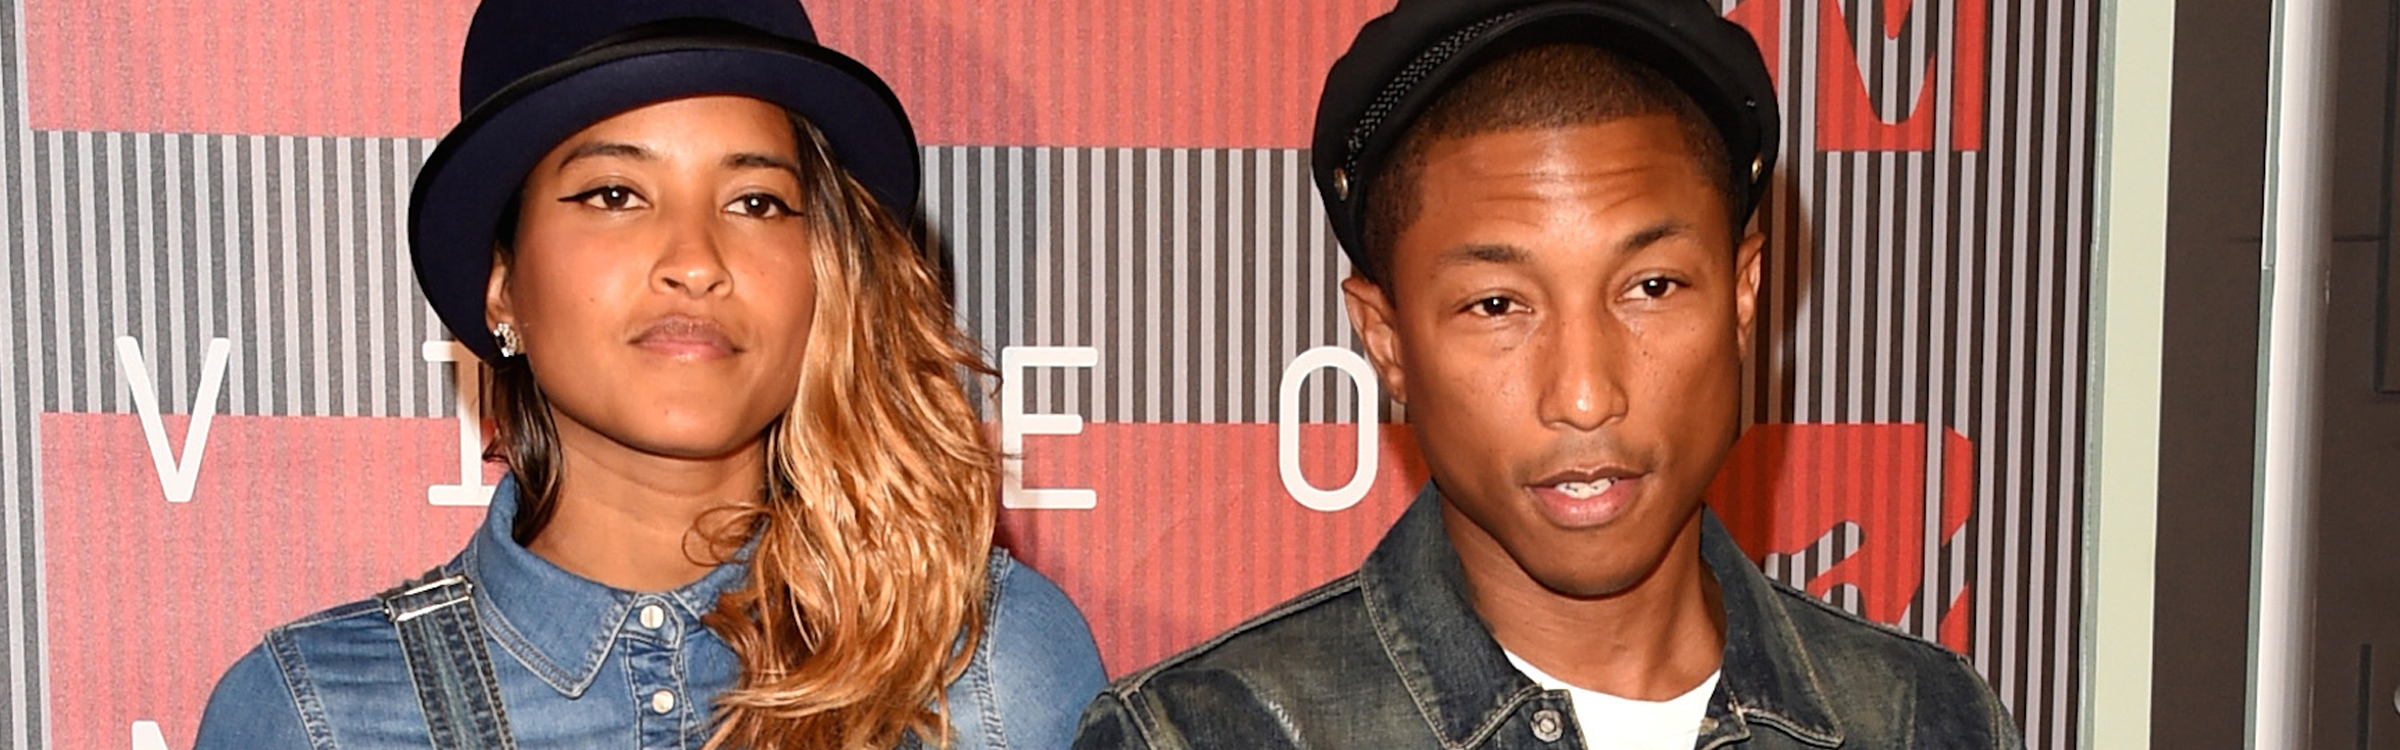 Header pharrel kind